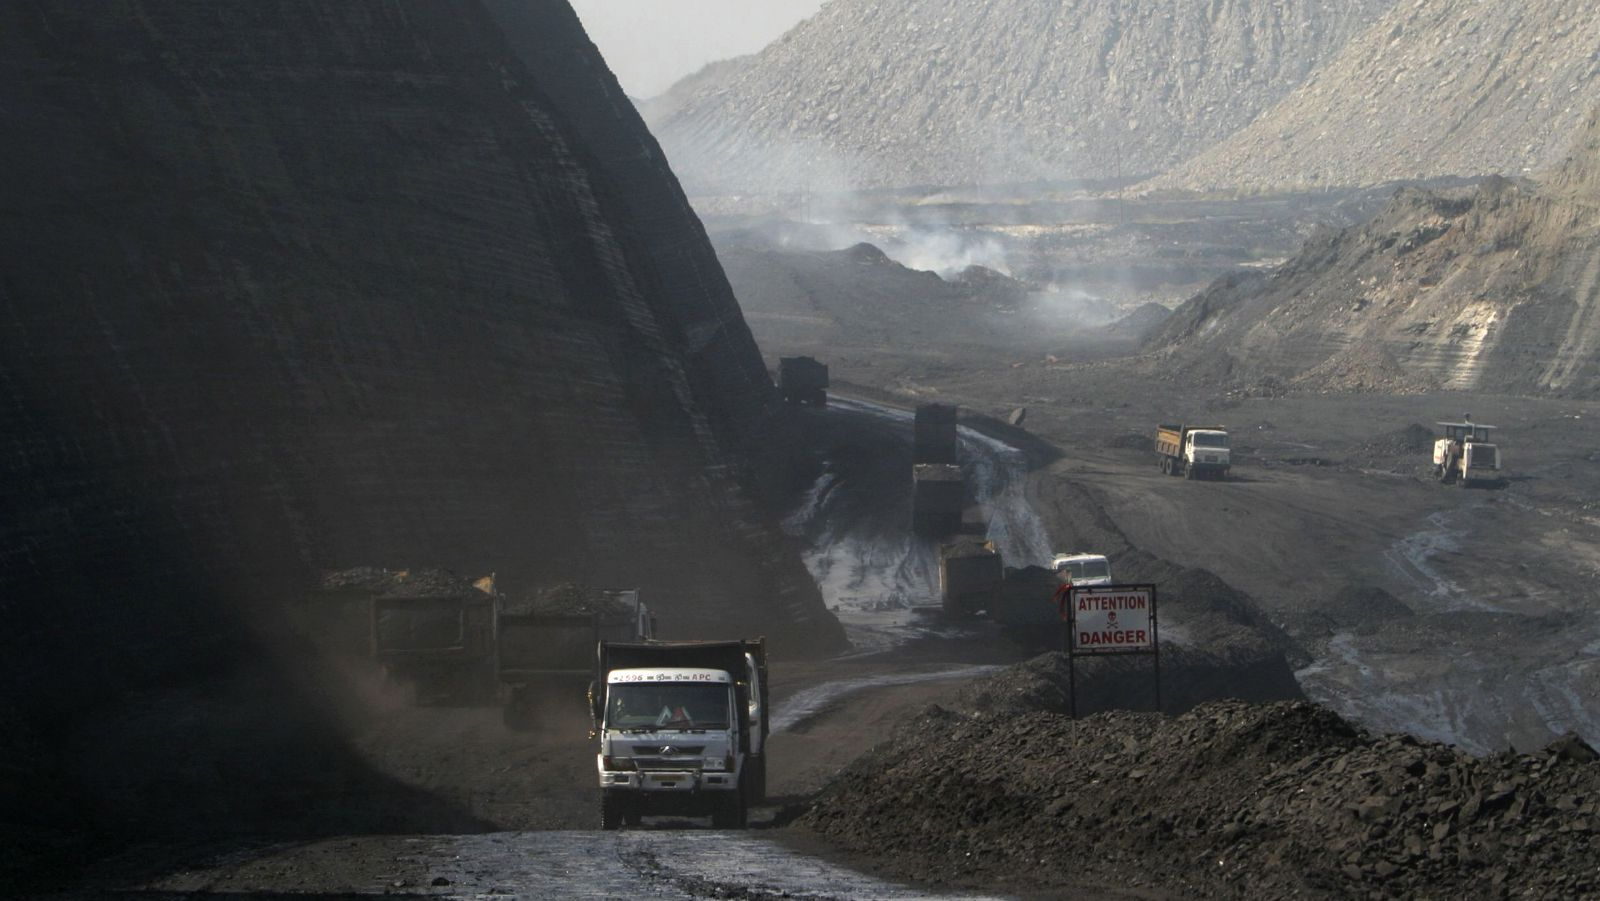 A general view of the Gevra coalmines in the central Indian state of Chhattisgarh, Asia's largest opencast coalmine, November 21, 2009. Although India has announced a new climate plan which identifies renewable energy such as solar power as key elements, coal remains the backbone of energy supply in India where almost half the 1.1 billion population still has no electricity. Picture taken November 21, 2009. To match feature INDIA-CLIMATE/COAL